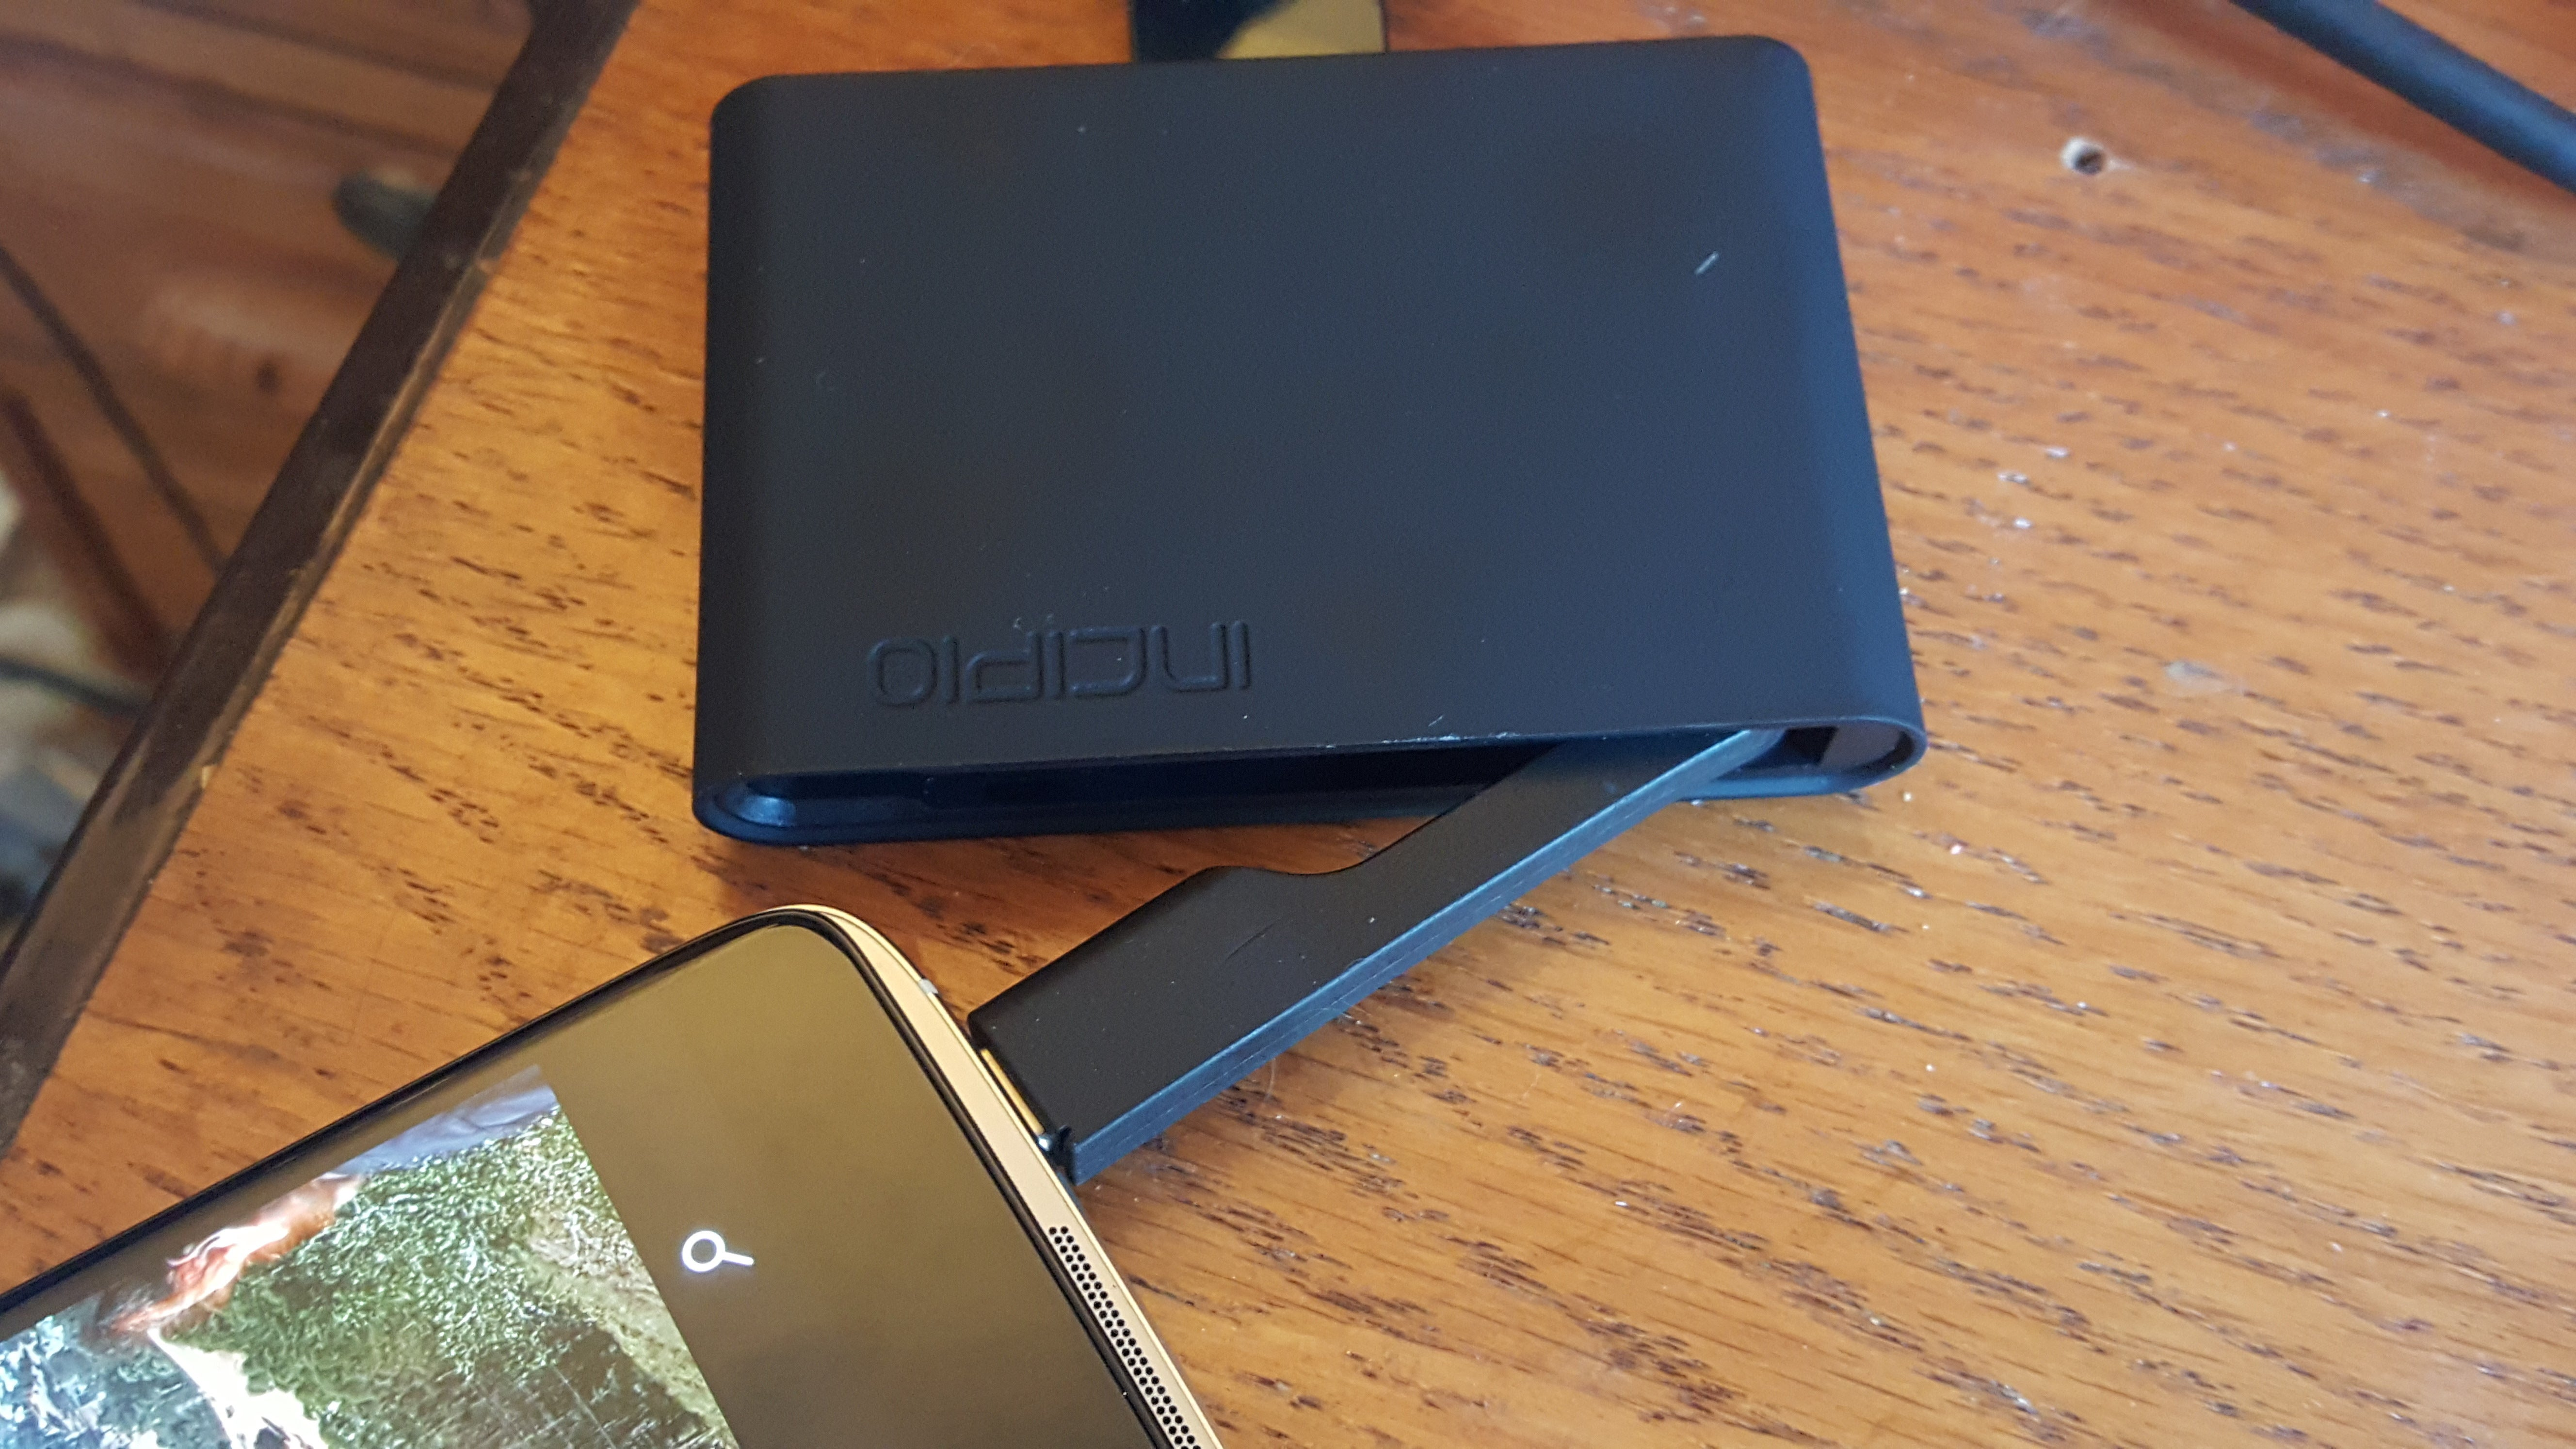 Review: The Alcatel Idol 4S launches Windows phones into the